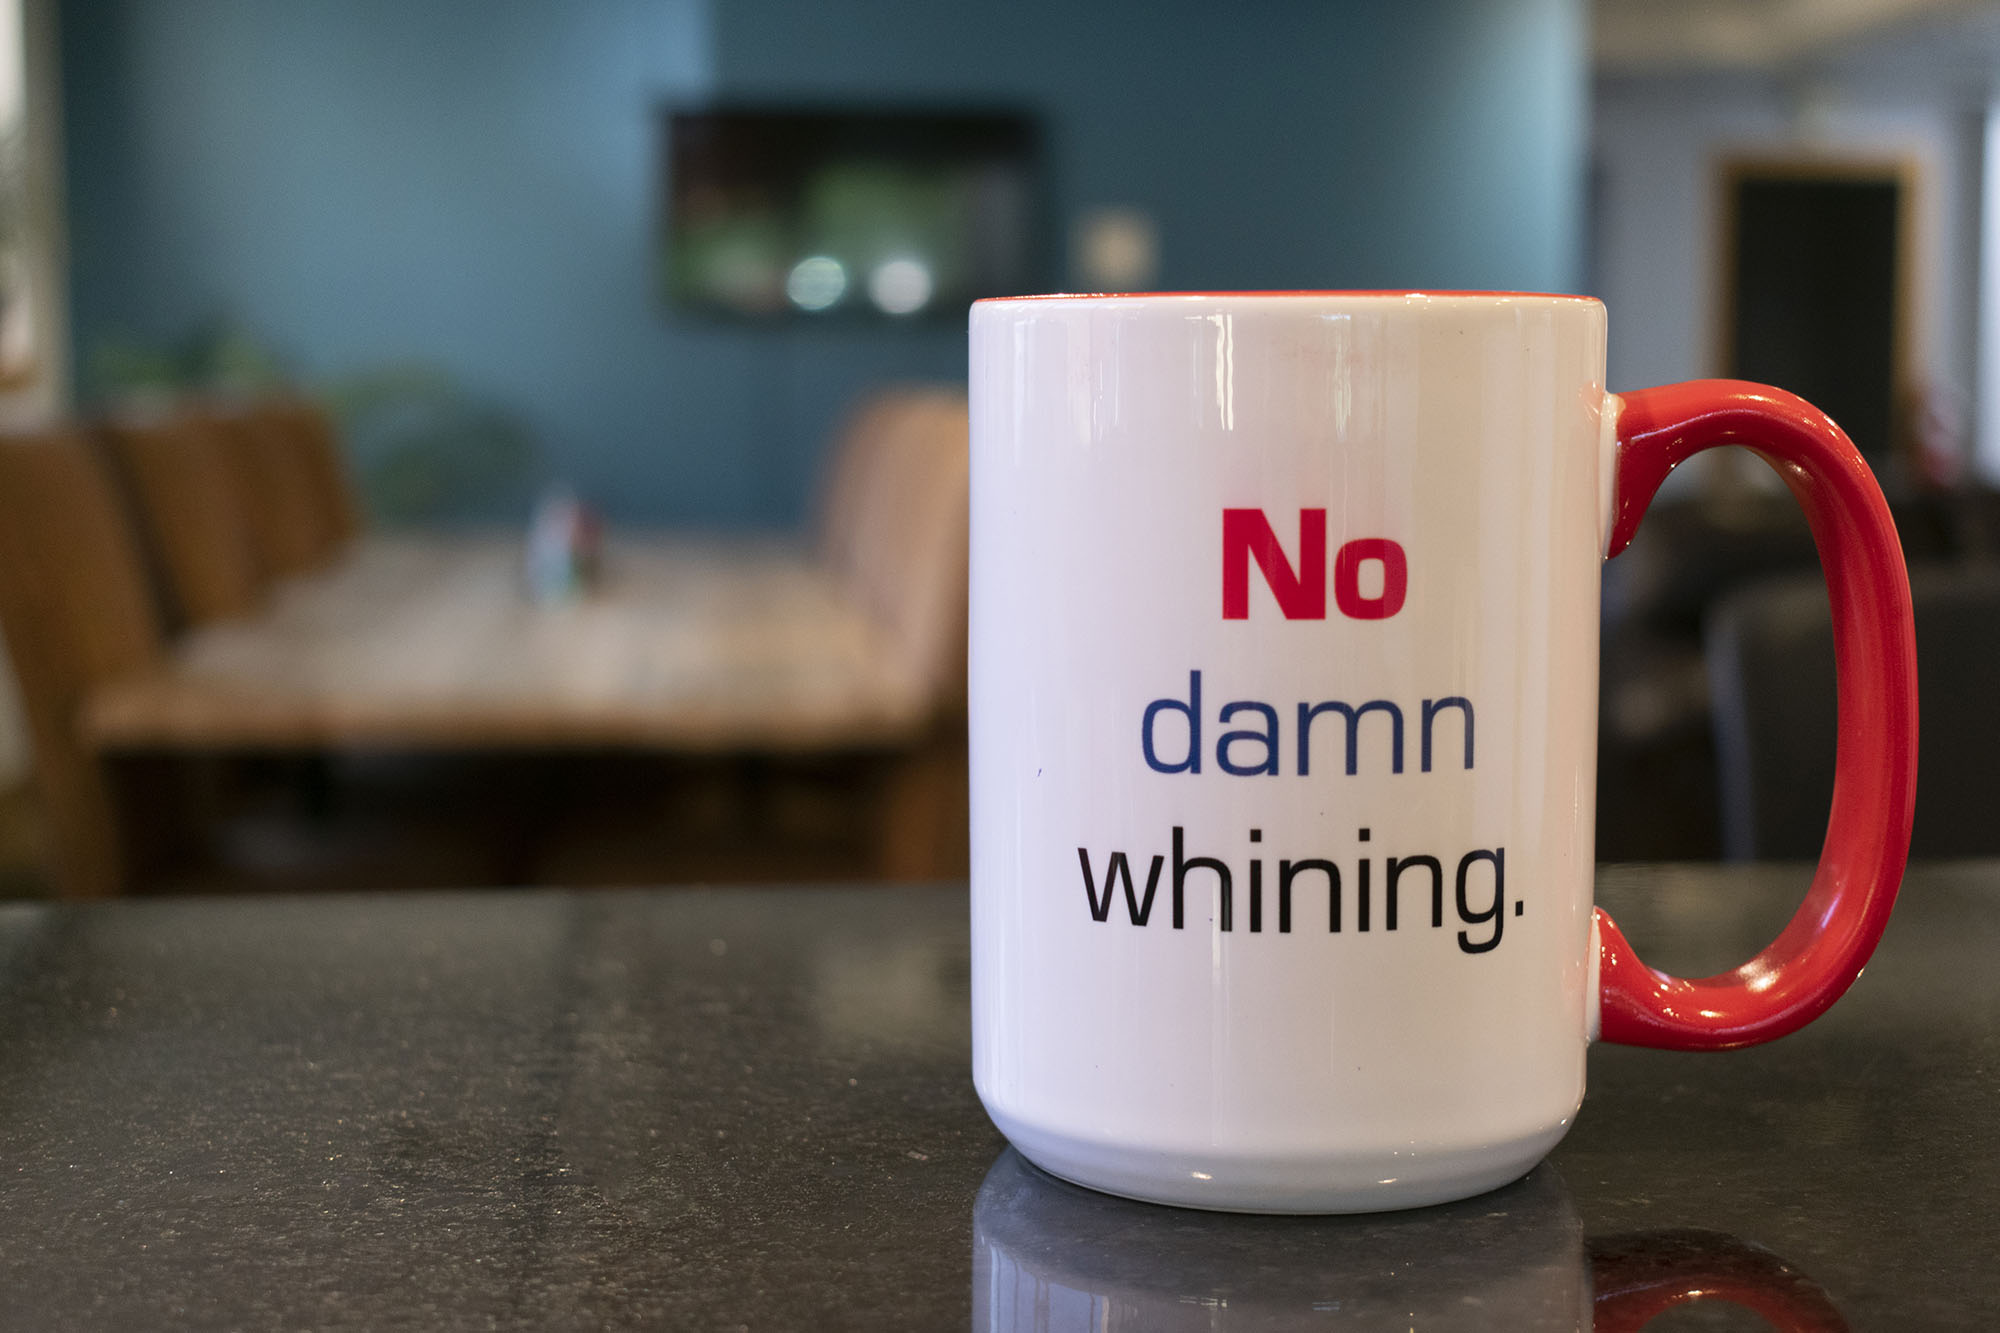 JetCo Solutions Mug That Has Company Value: No Damn Whining